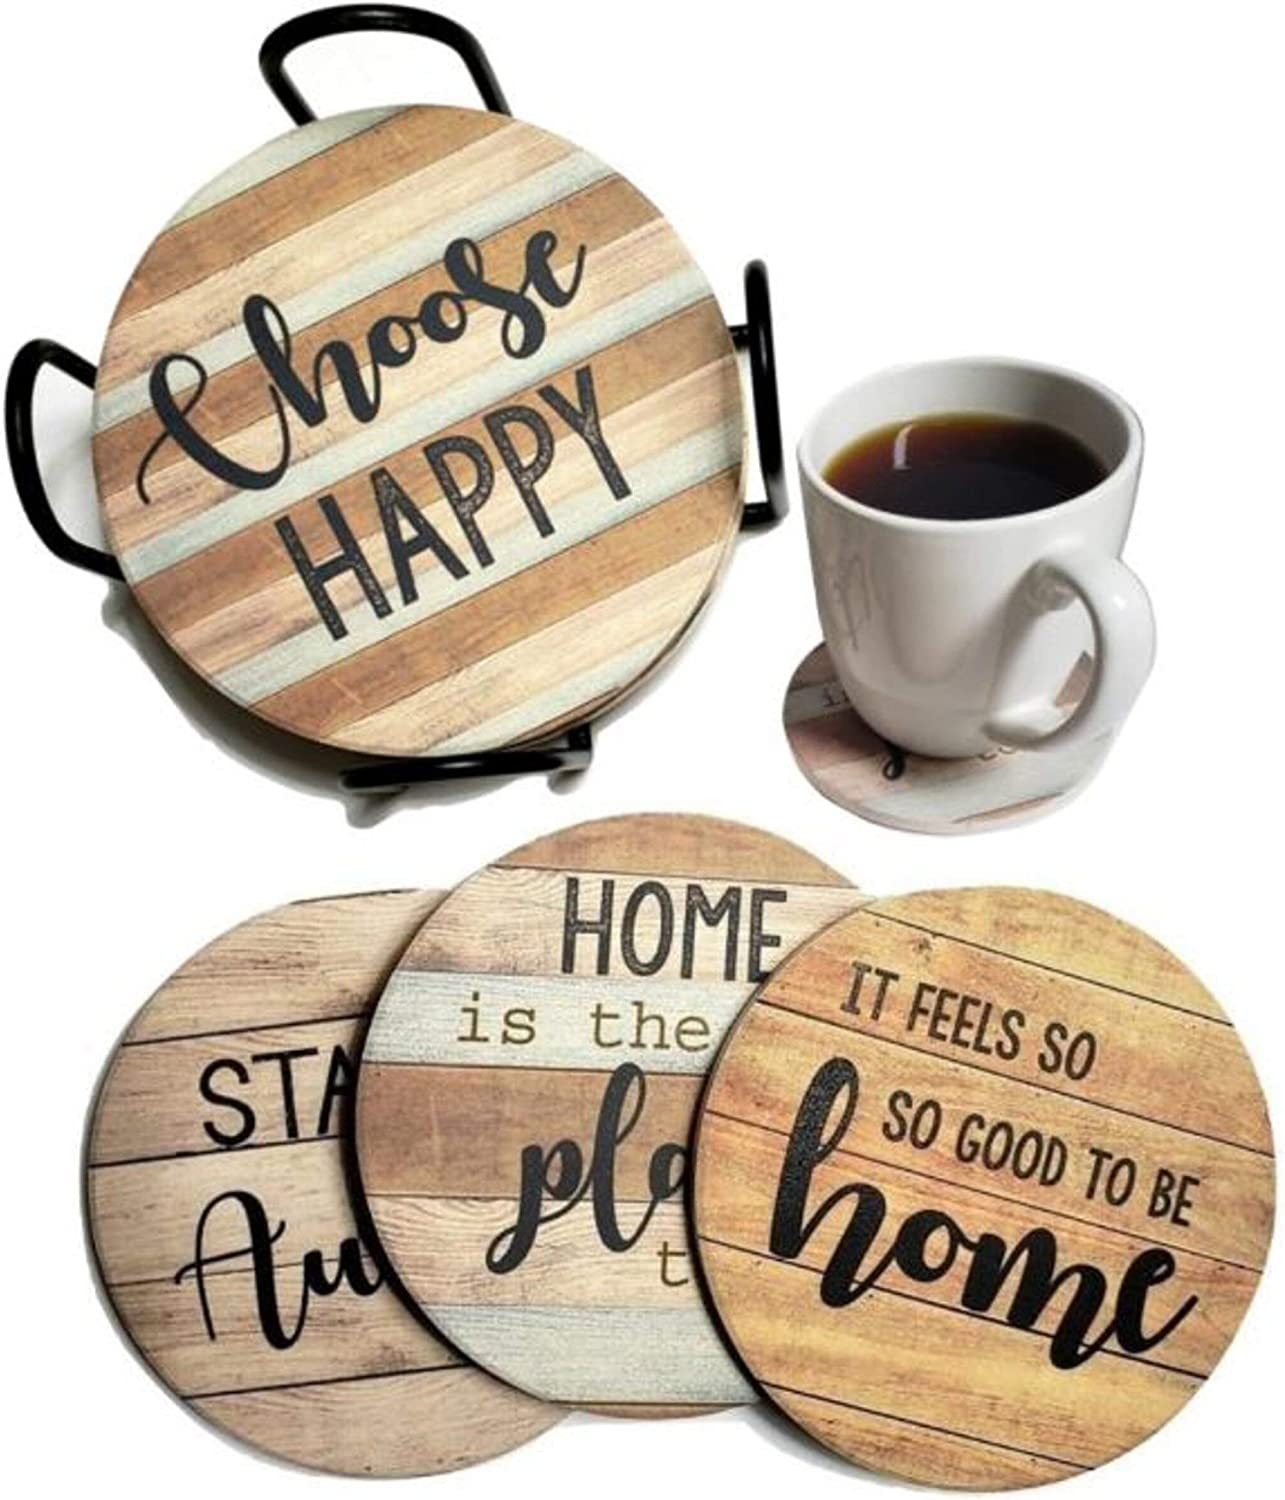 PANCHH Rustic Farmhouse Stone & Cork Coasters for Drinks, Absorbent - Set of 6 Coasters with Holder - Best Housewarming Gifts for New Home Ideas - Cute Kitchen and Coffee Table Décor & Accessories